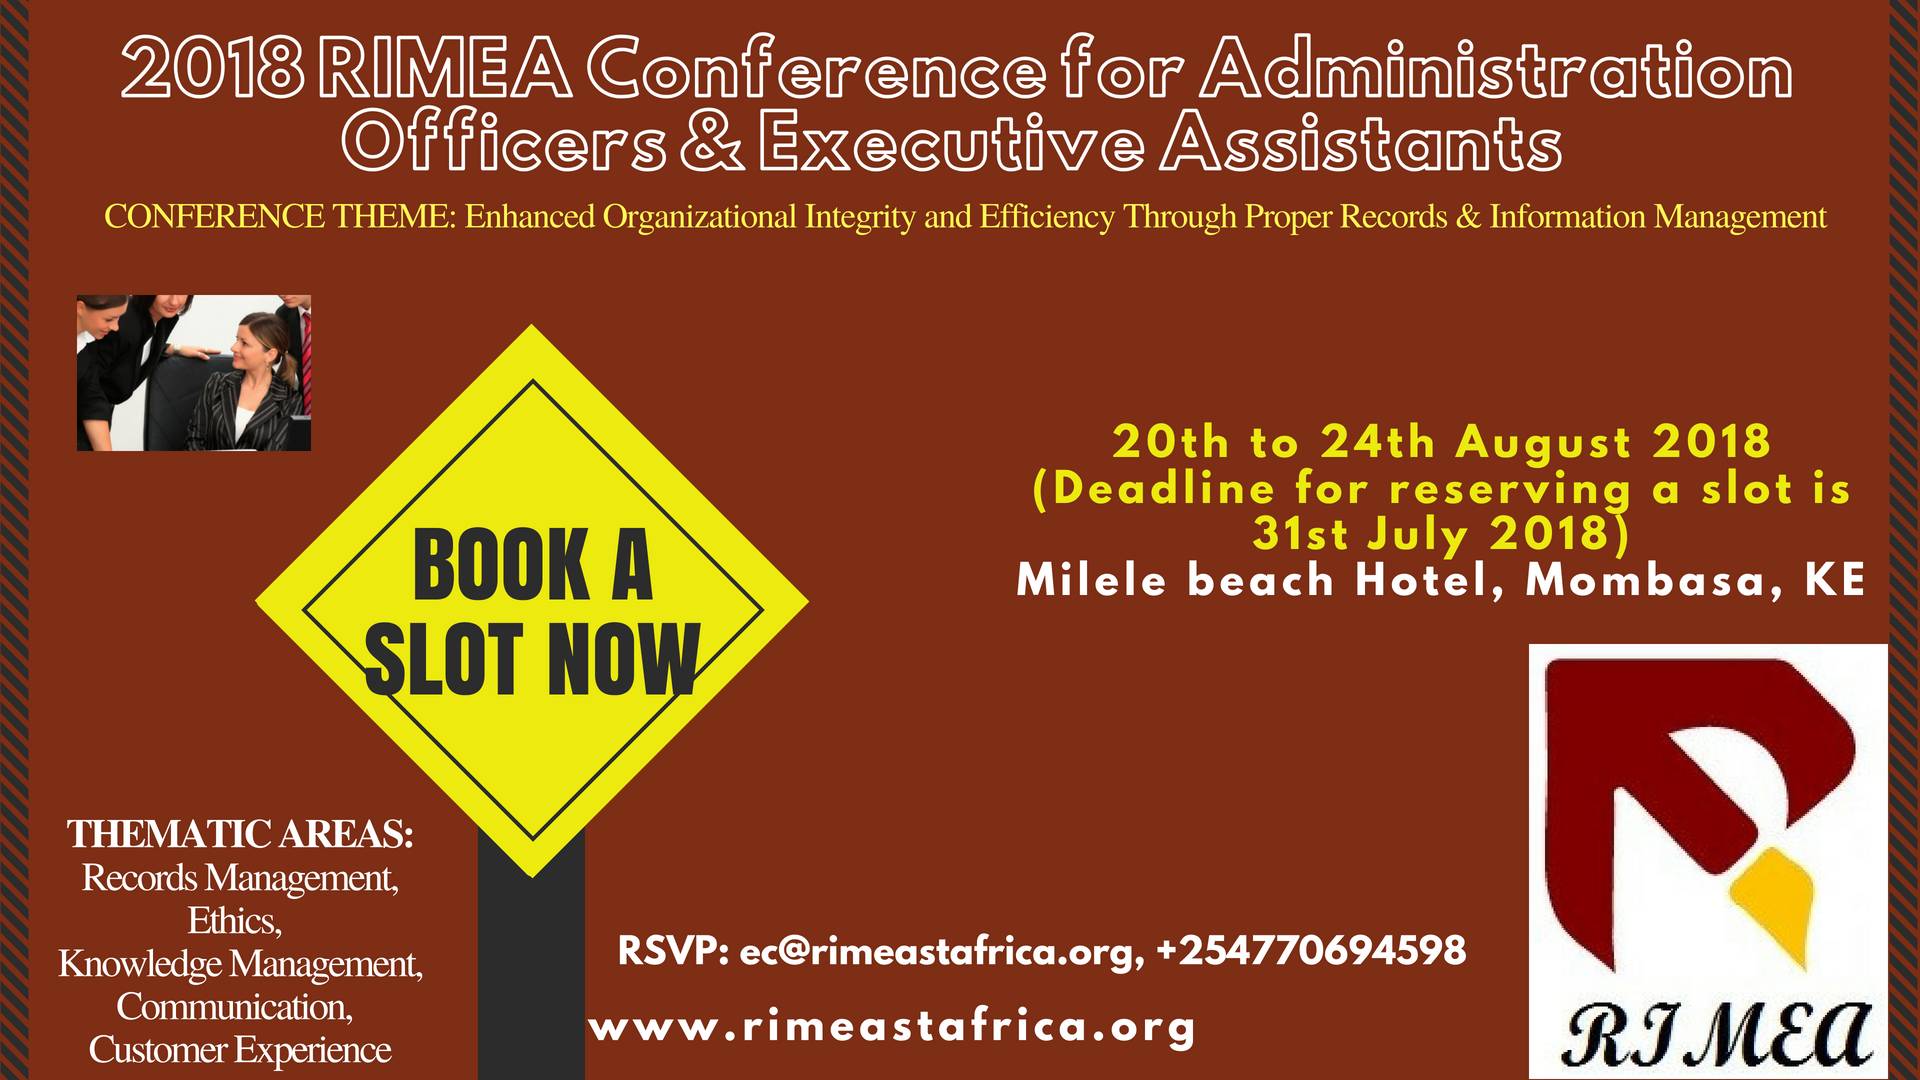 2018 RIMEA Conference for Administration Officers & Executive Assistants